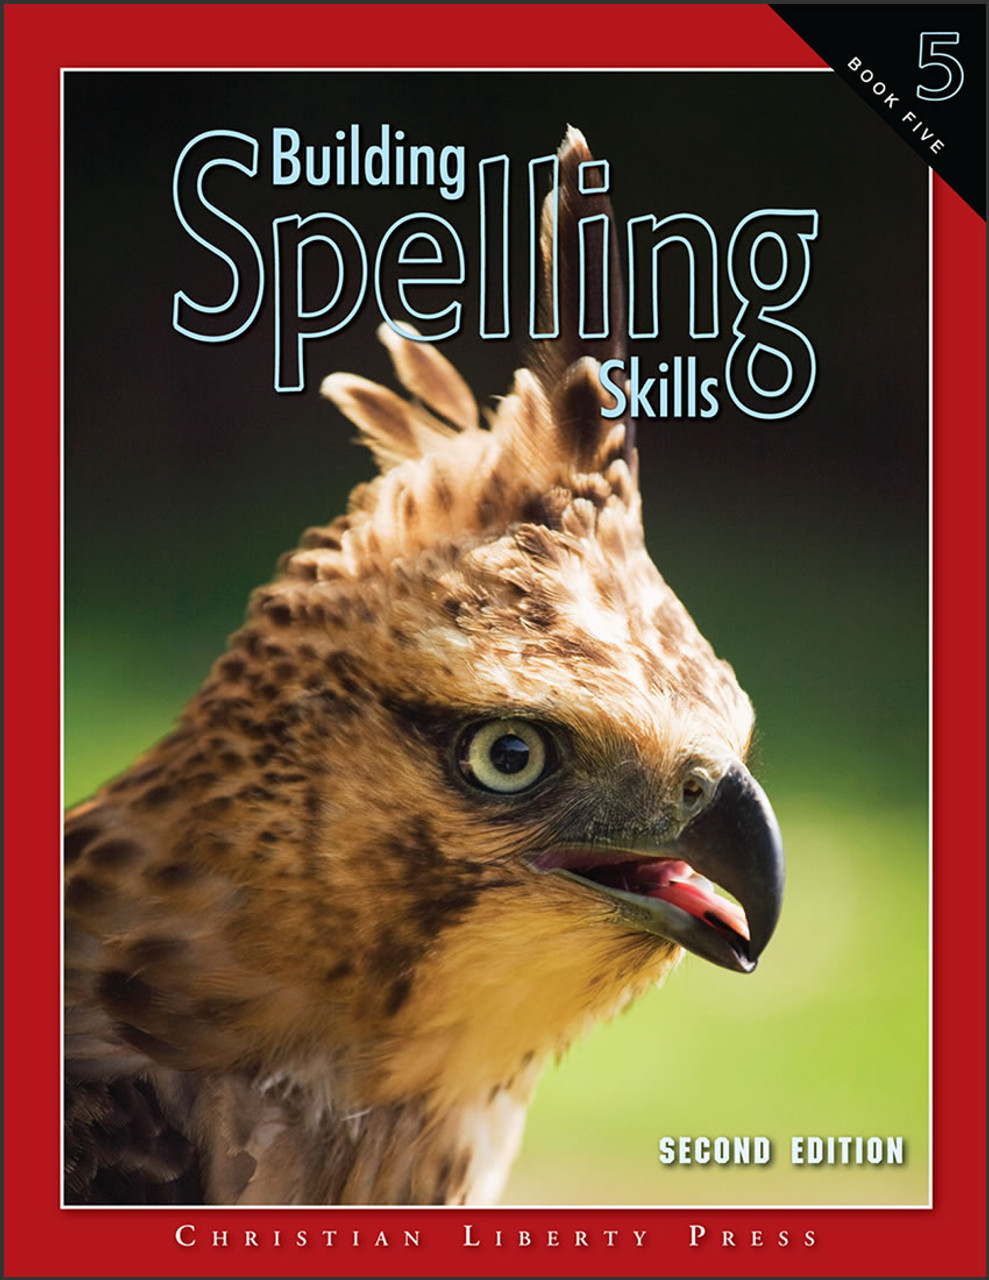 Building Spelling Skills Book 5, 2nd edition